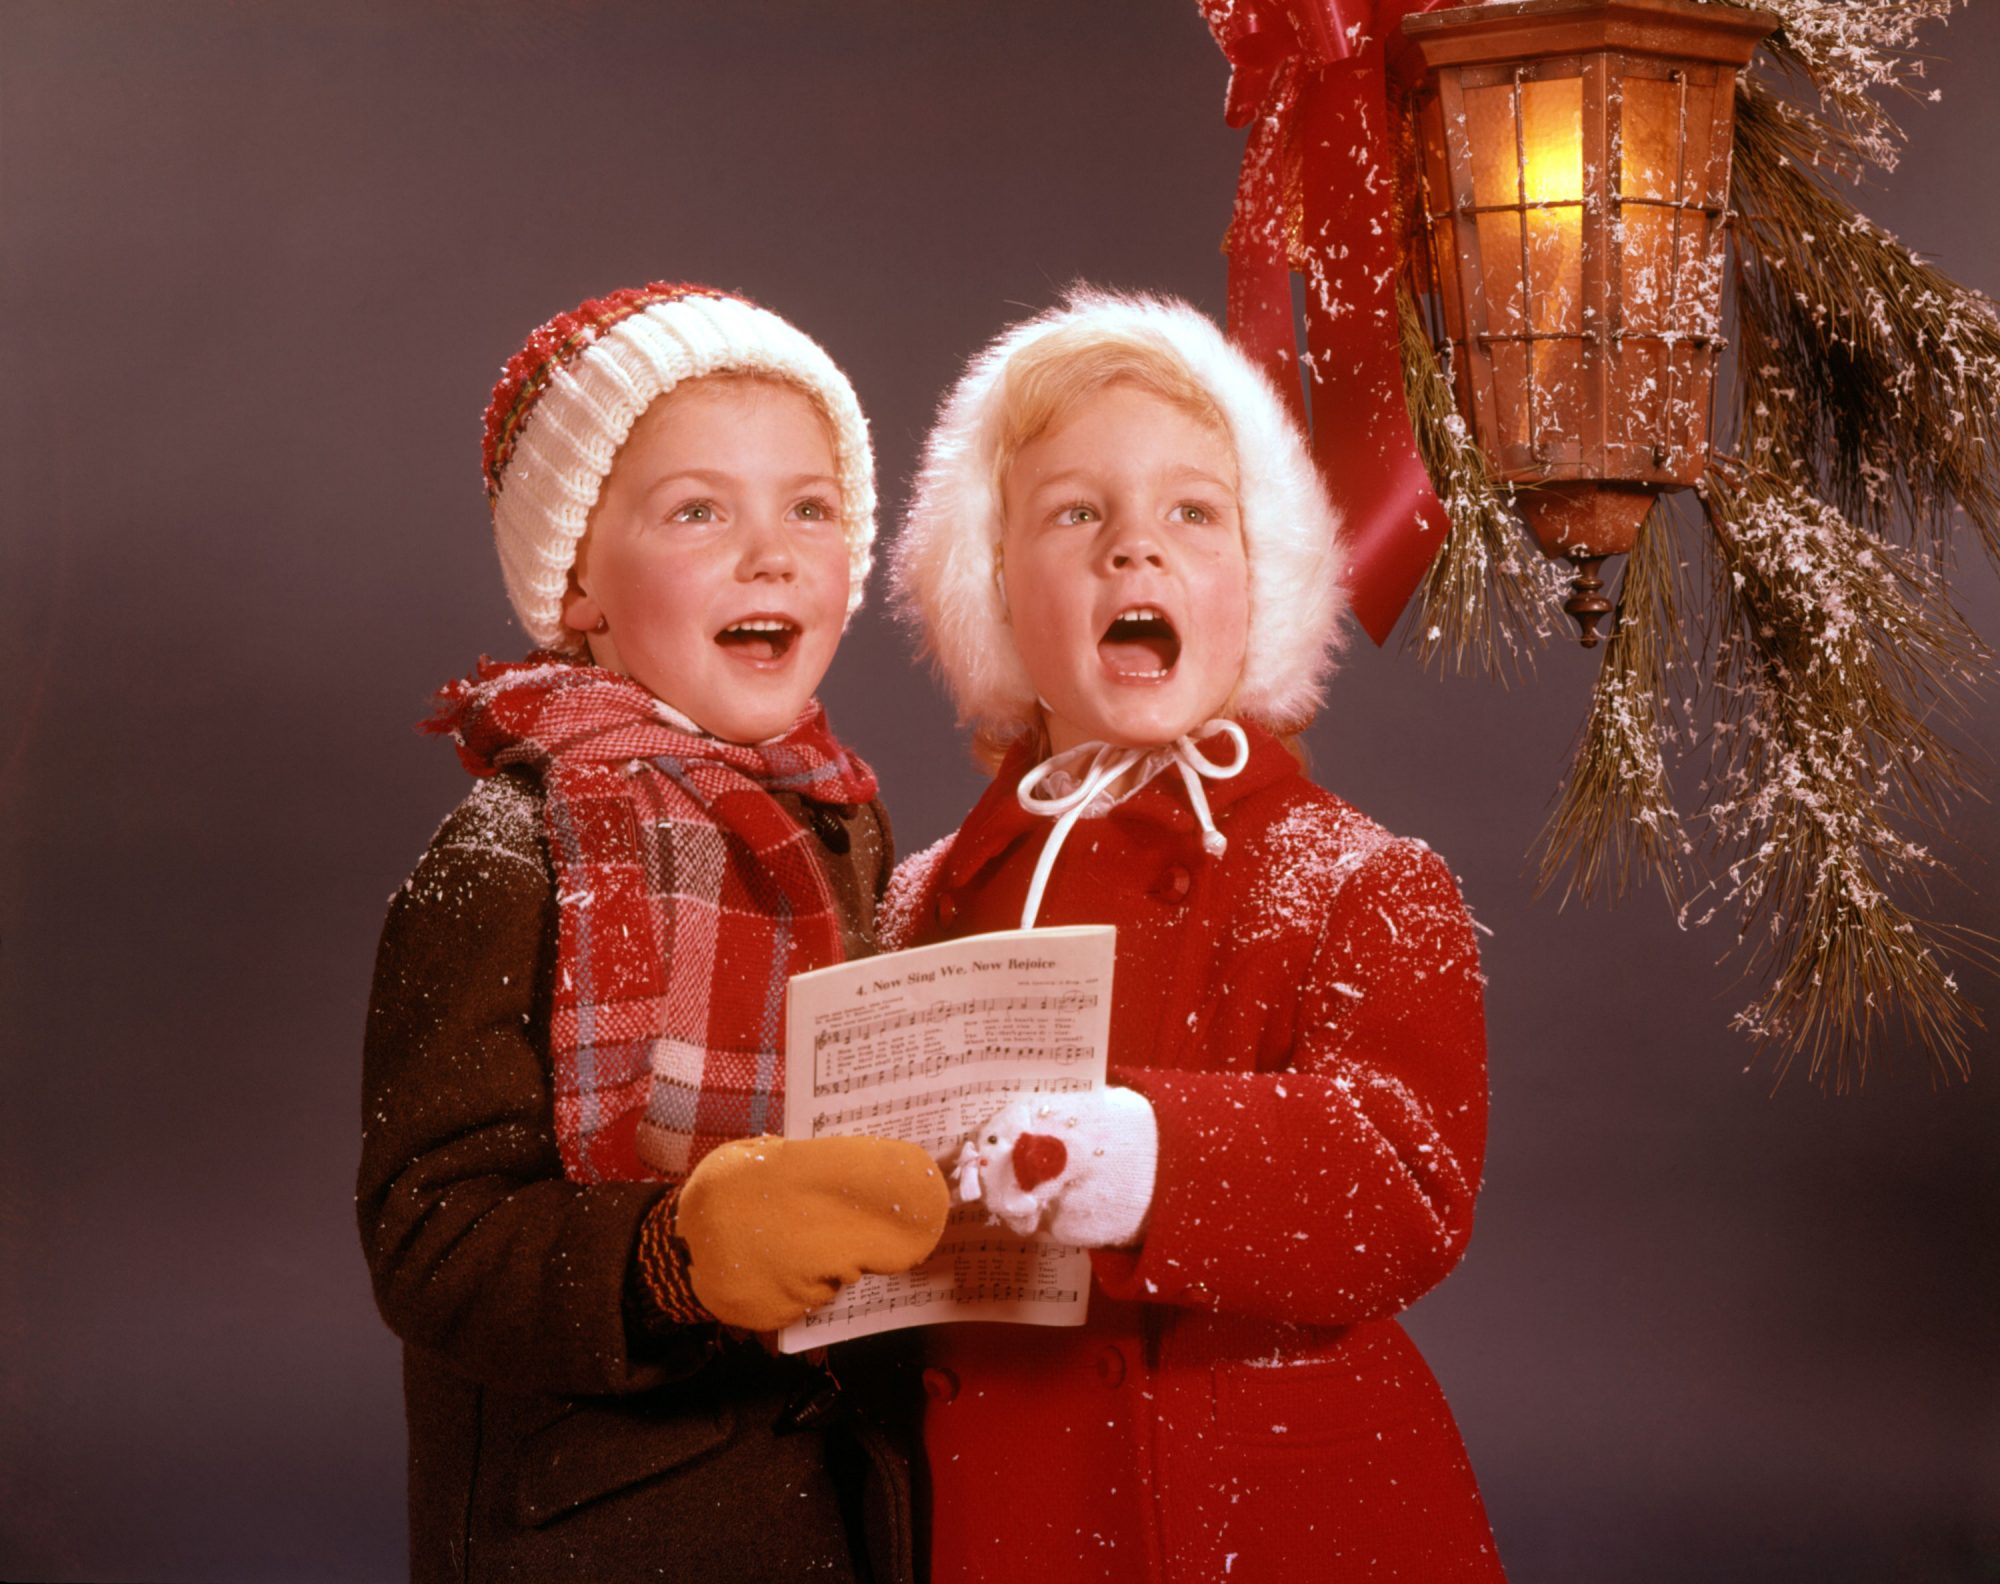 Two Children Singing Christmas Carols